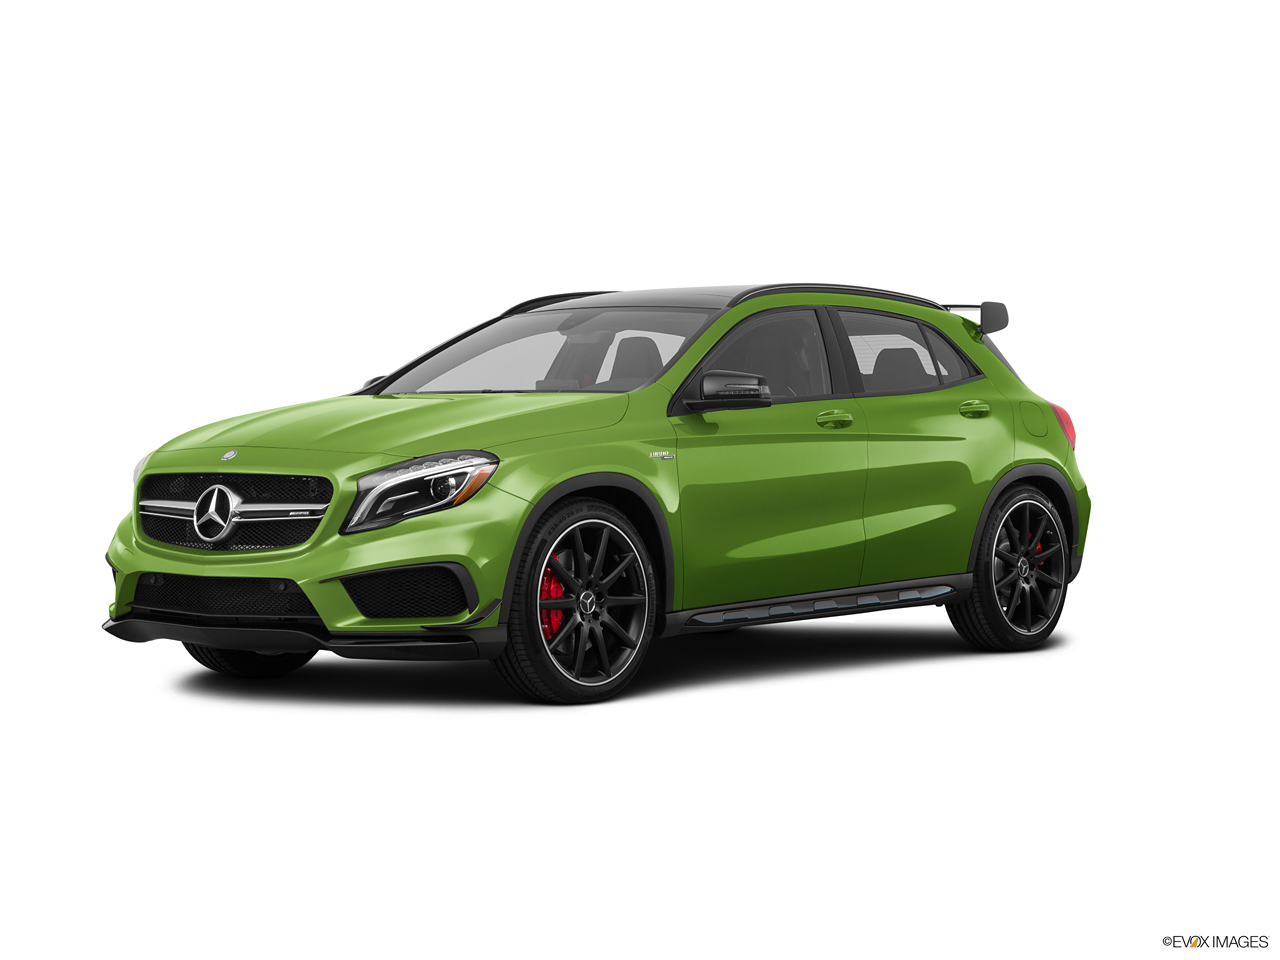 mercedes benz gla 2016 45 amg in uae new car prices. Black Bedroom Furniture Sets. Home Design Ideas